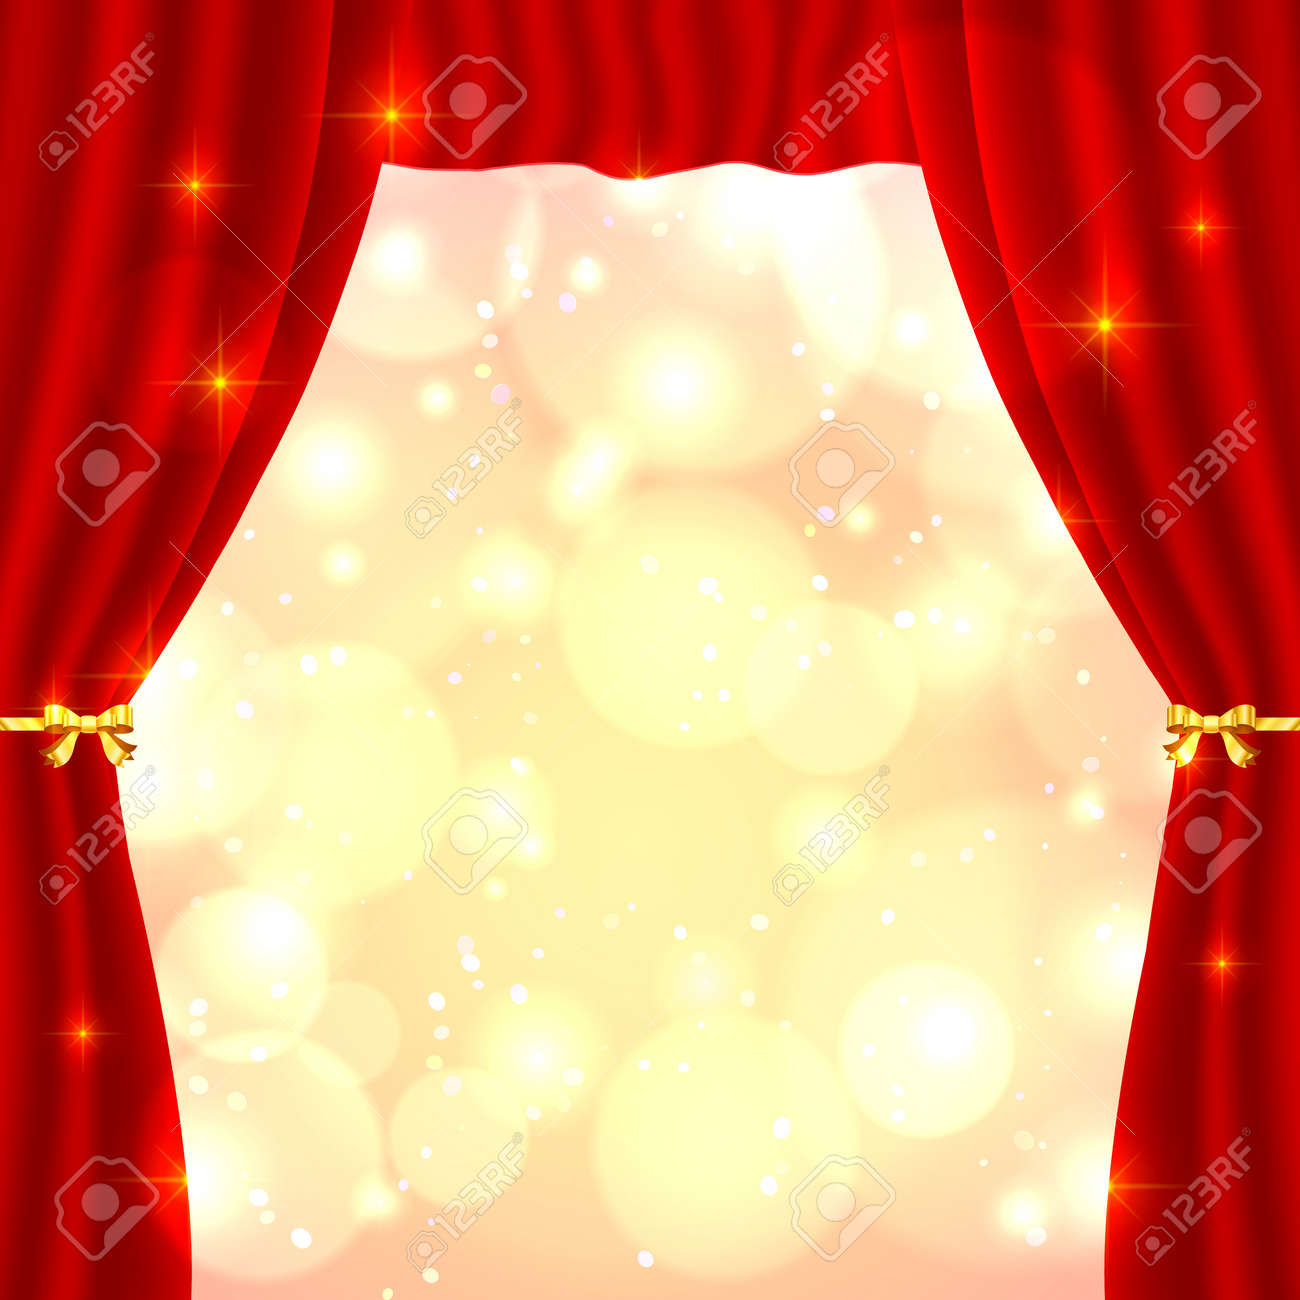 Red opened vector theatrical curtain with bright lights inside Stock Vector - 17350363